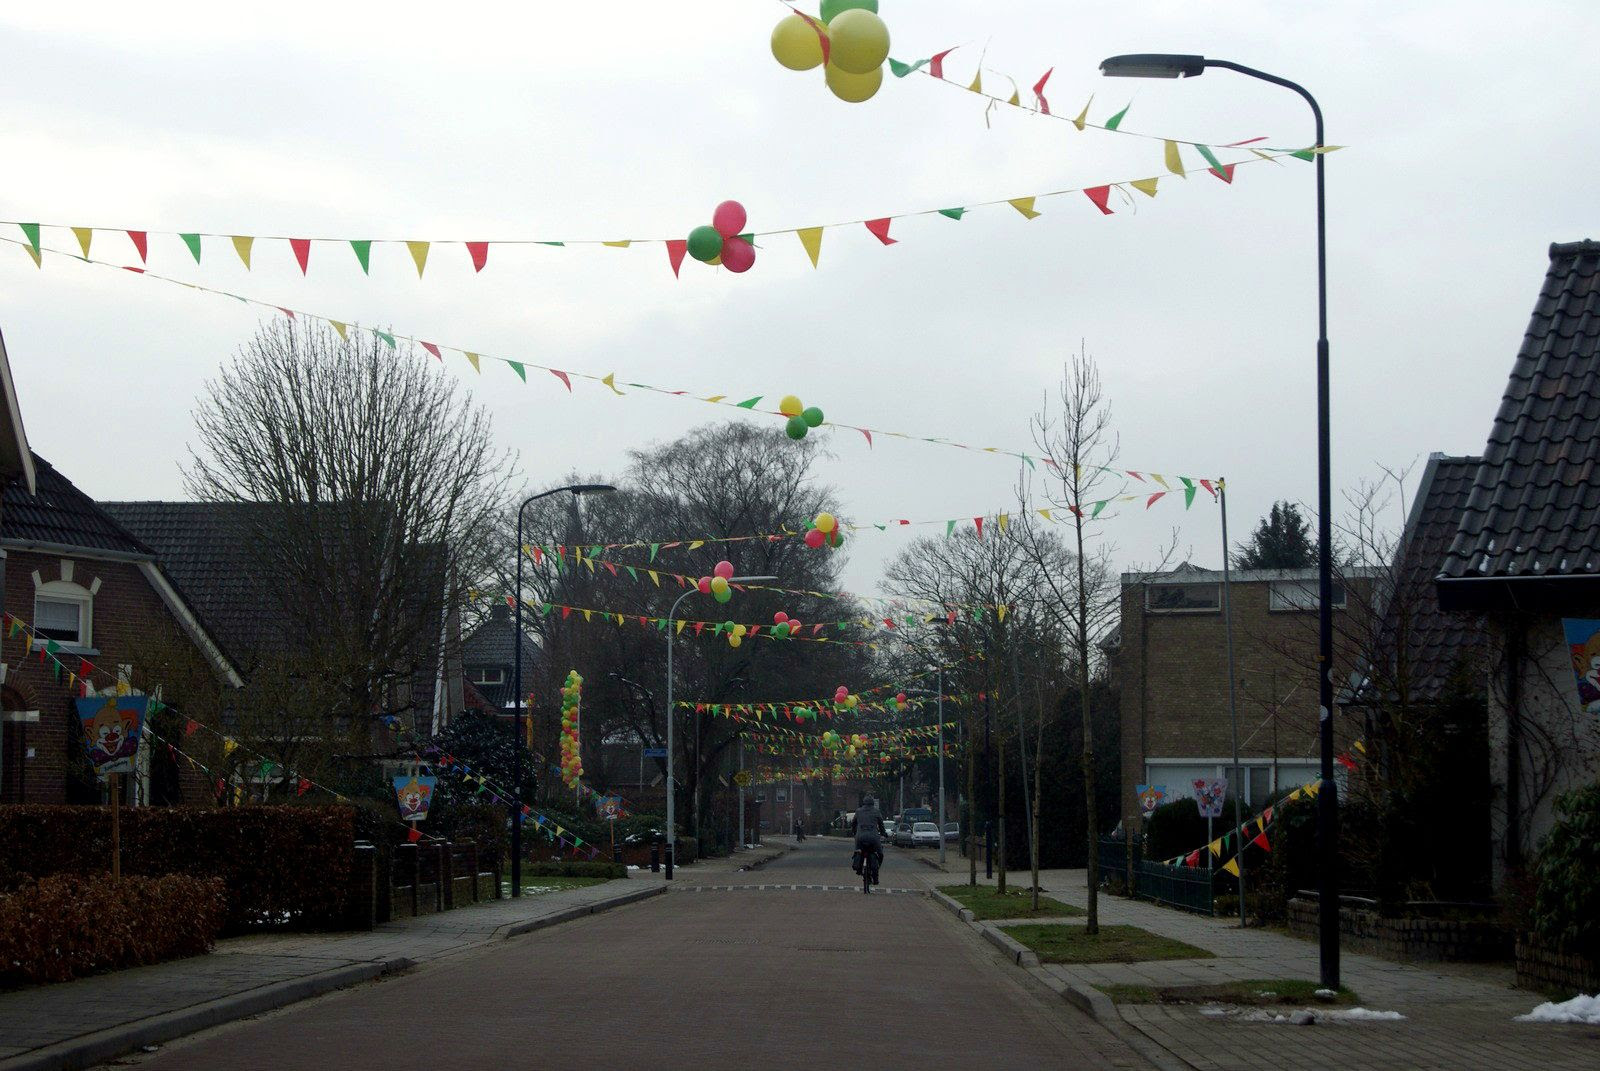 14.2, Today..they are celebrating Carnival in the Dutch neighborhoods.